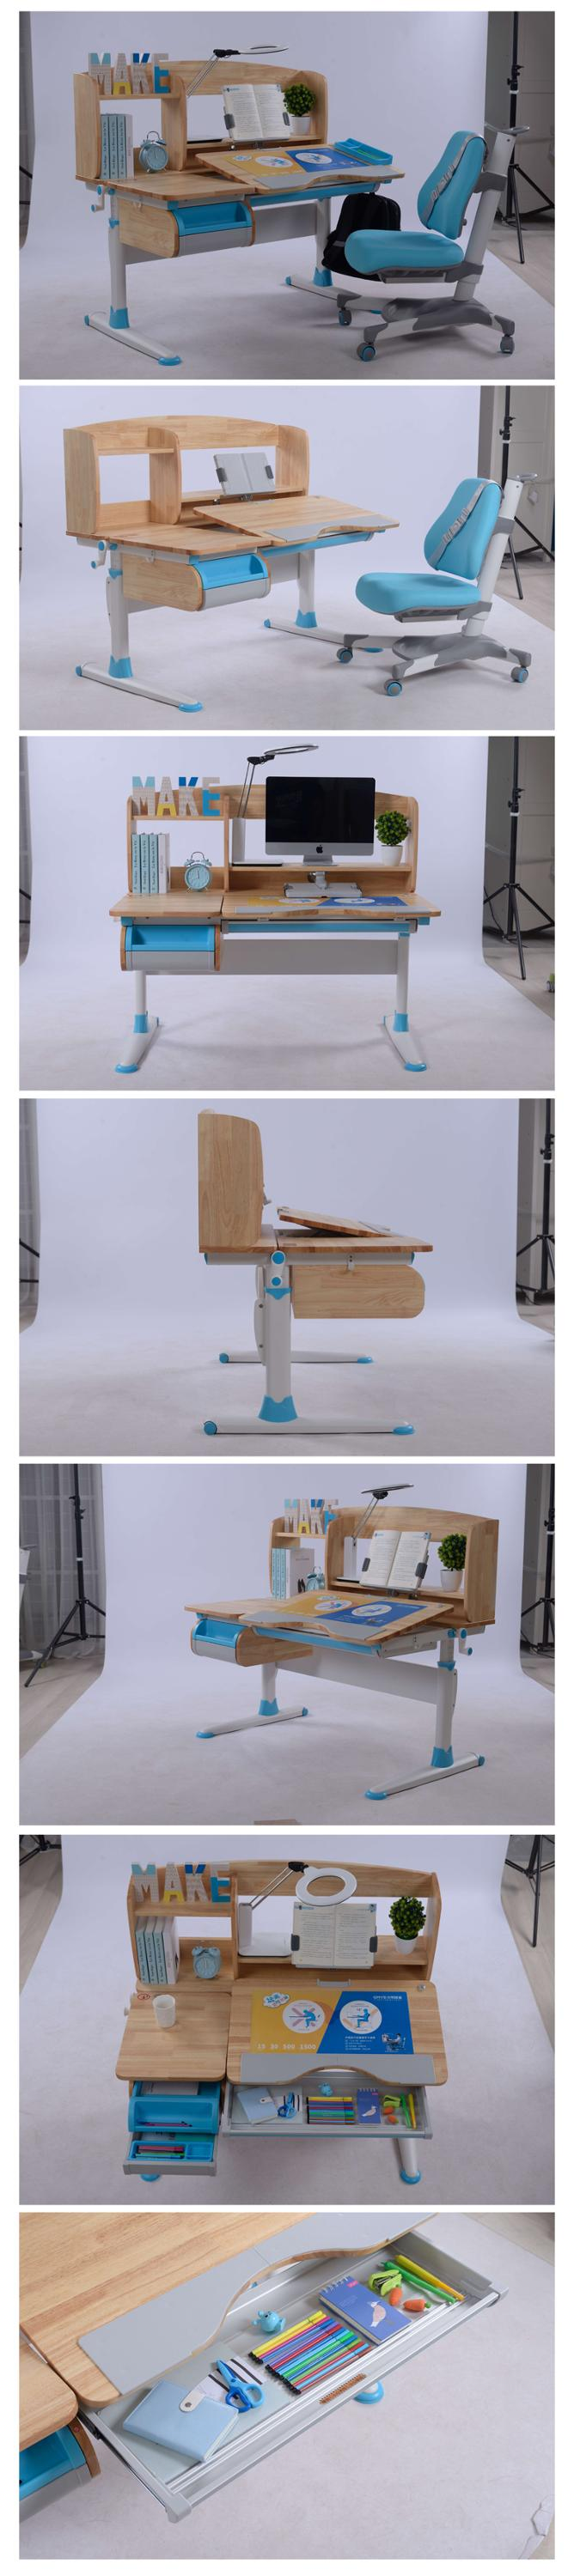 School Children Table Ergonomic Design 120cm Length